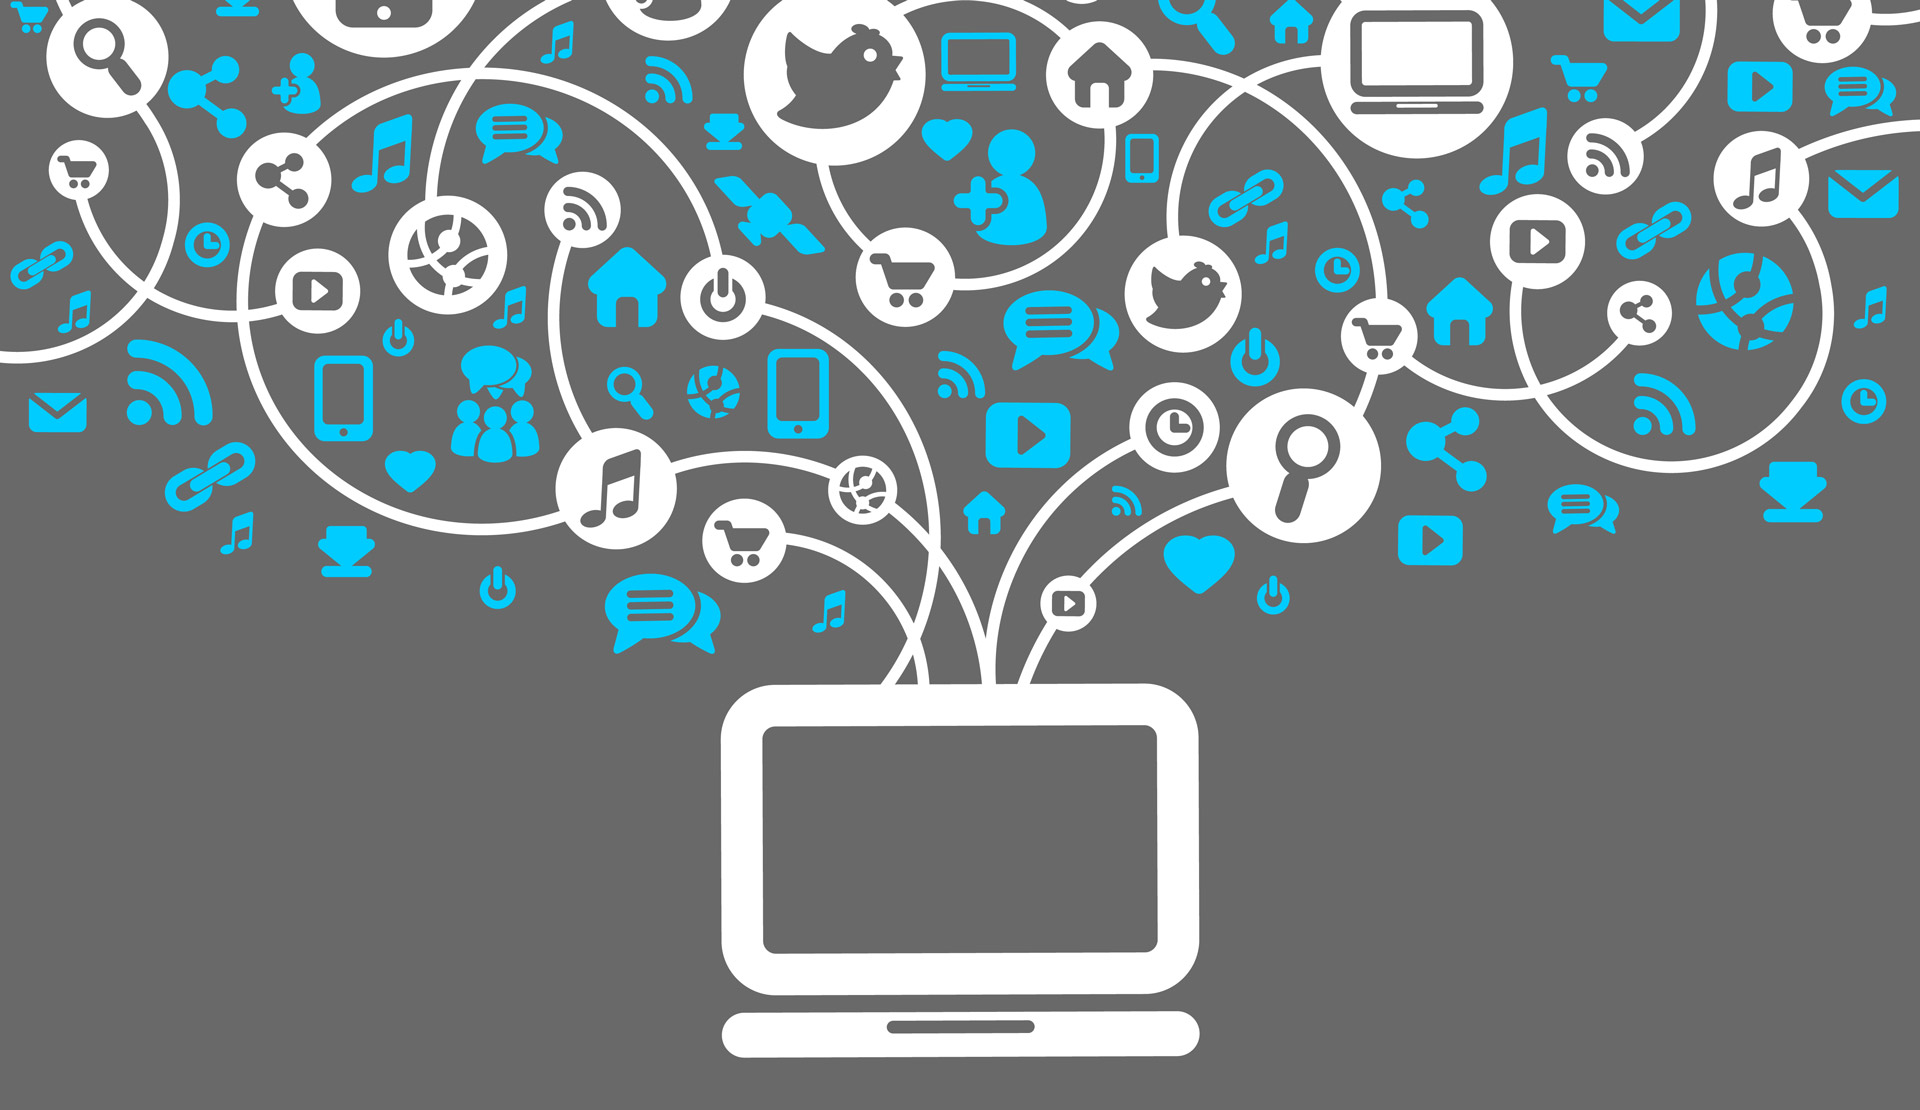 Computer linking to social media trends